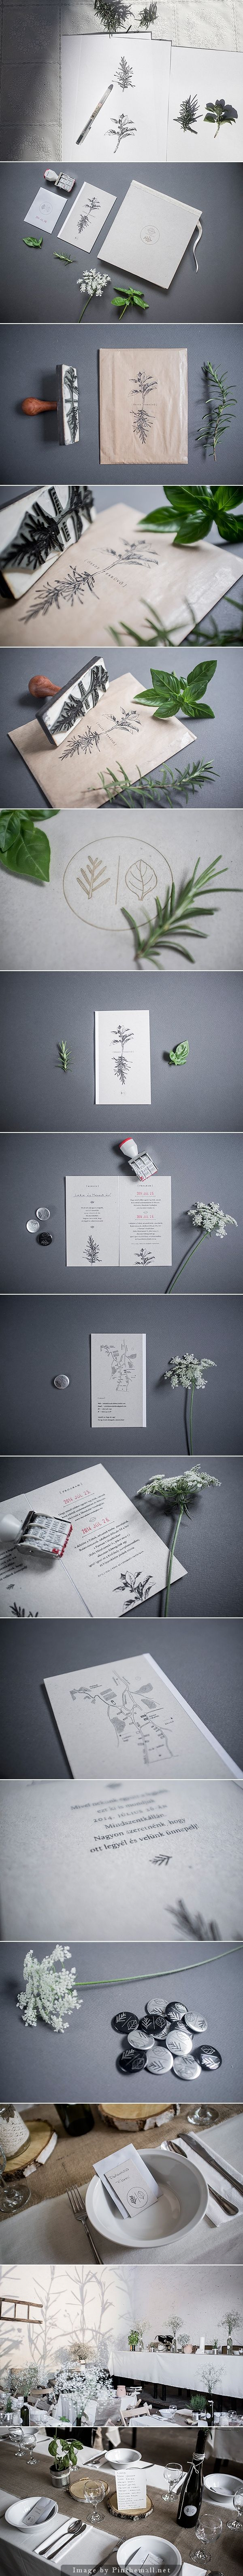 graphic design herbs illustrationZsofis wedding by Eszter Laki